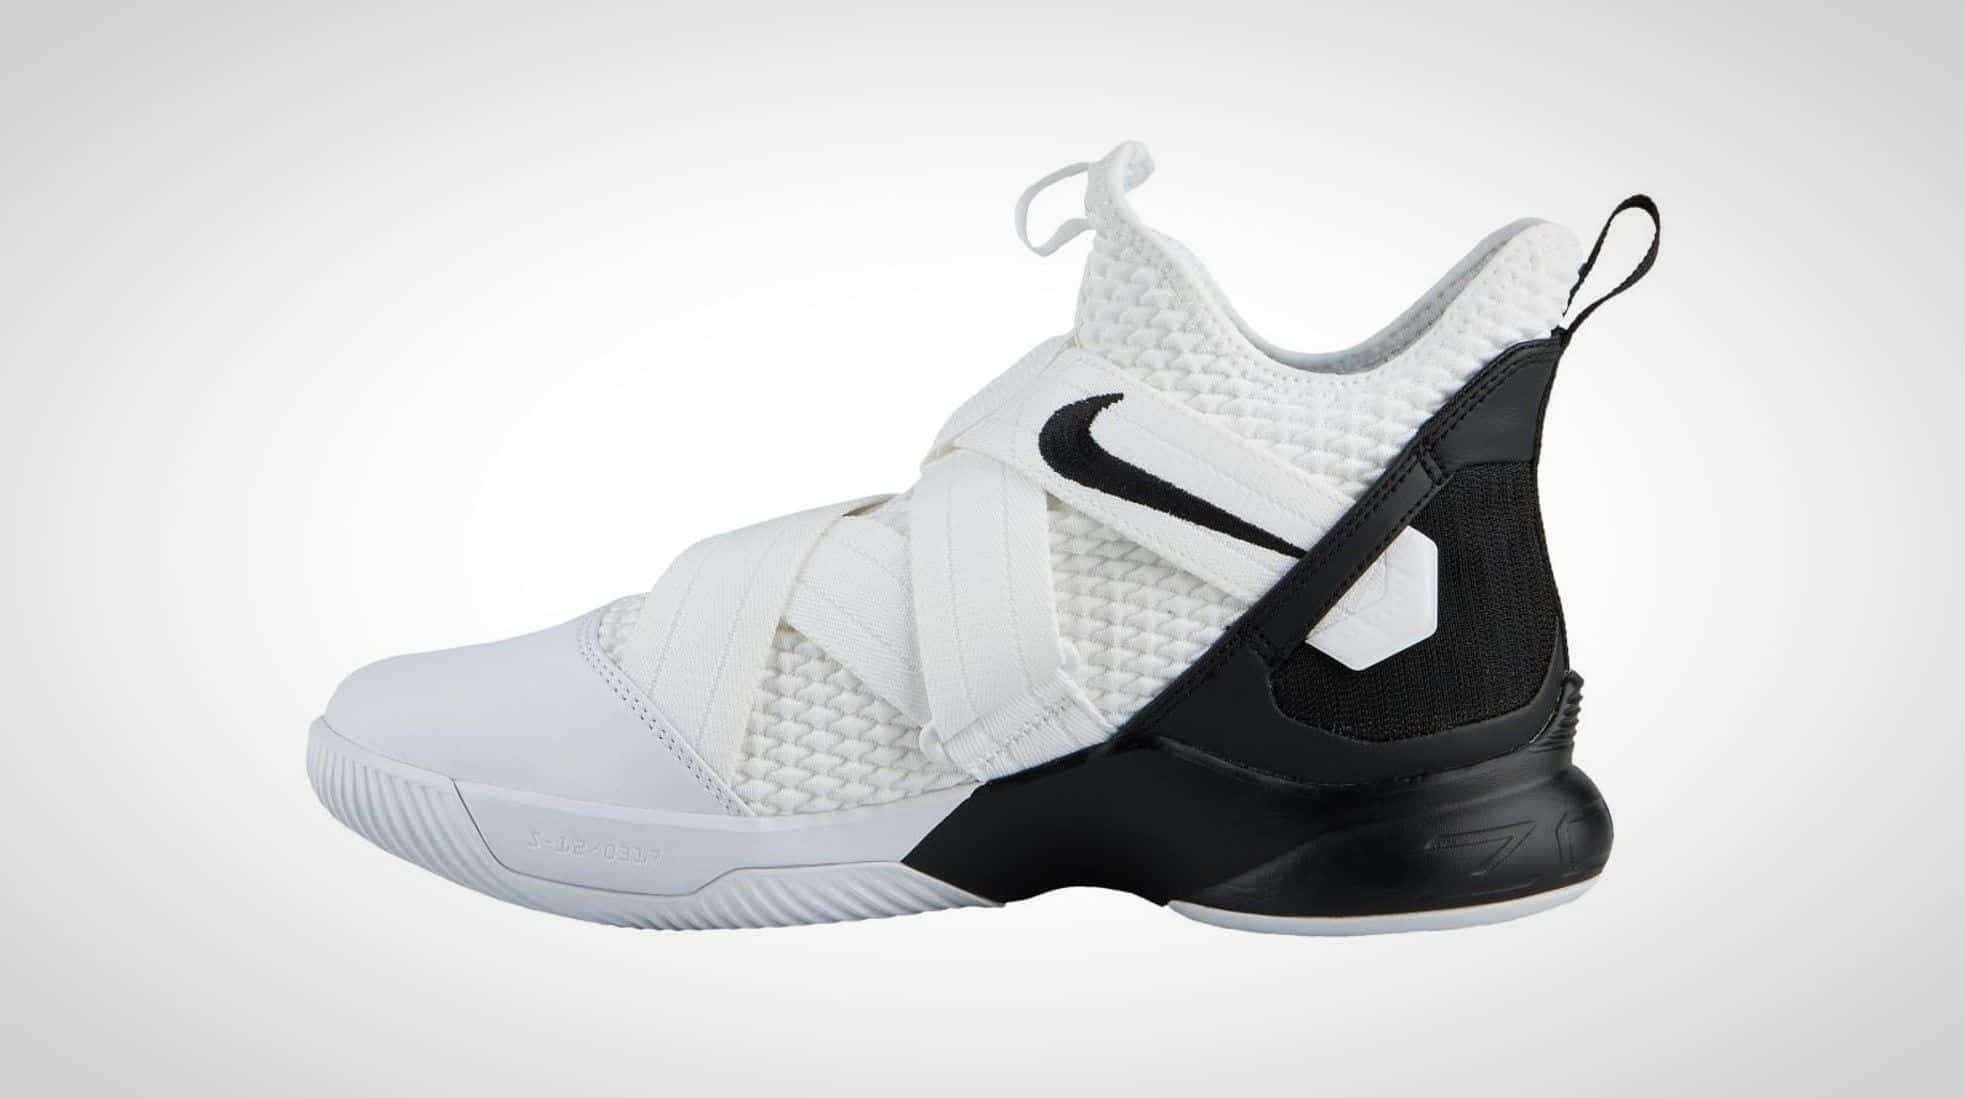 68c9efd14cc4 Nike Lebron Soldier 12 Shoe Review - BestOutdoorBasketball